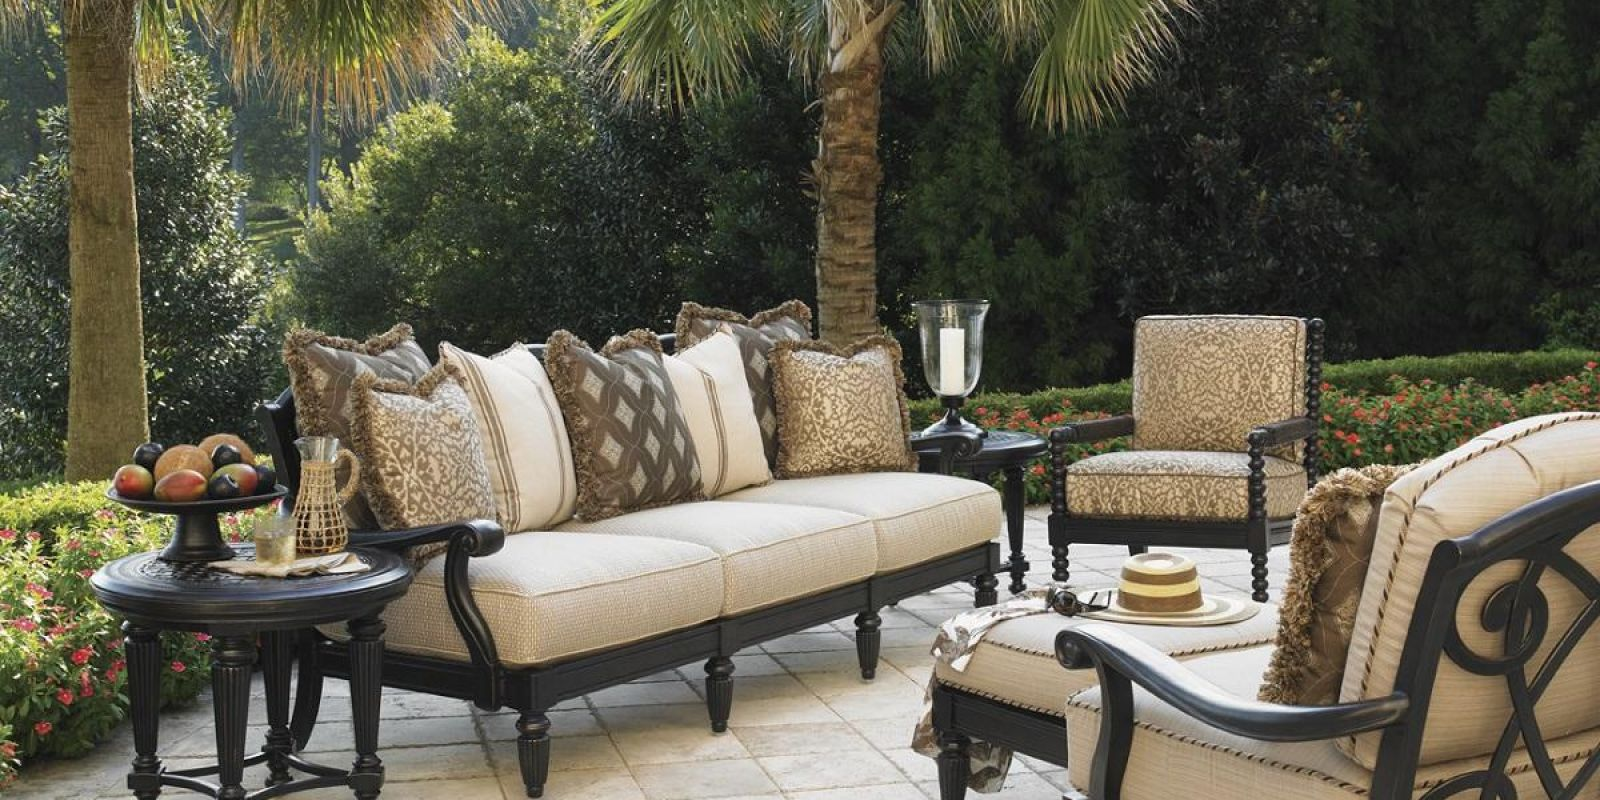 Outdoor Furniture | American Casual Living on Porch & Patio Casual Living id=15632